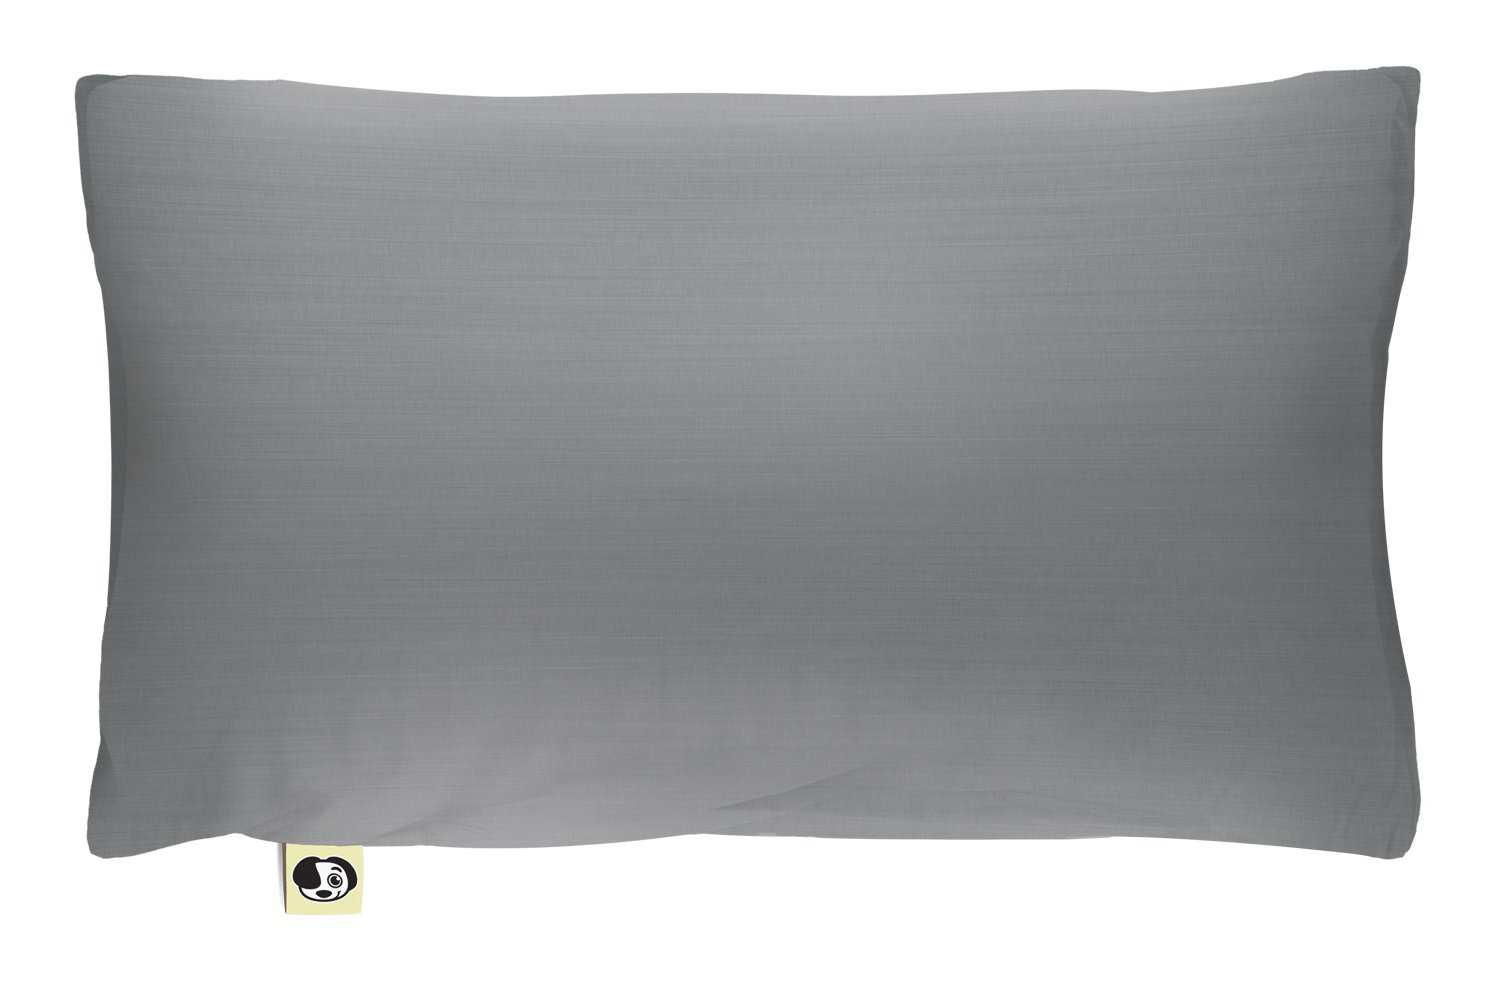 The Shrunks Natural Fibre - Water-Proof Toddler Pillow and Cover, Grey by The Shrunks